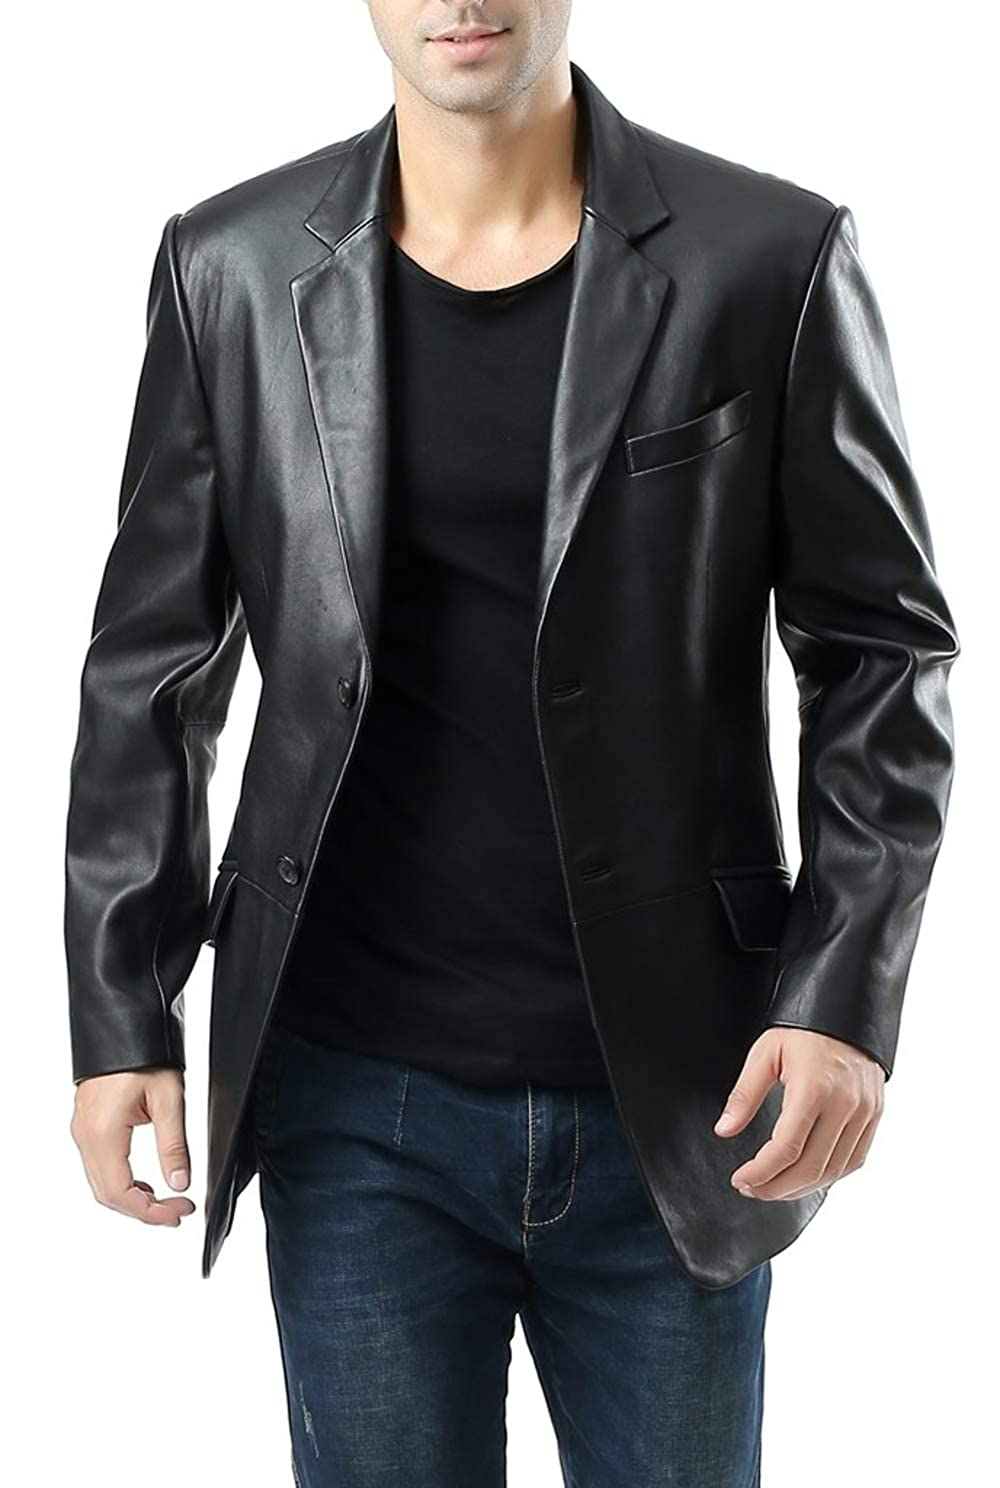 Number Seven Black Leather Blazer for Men Two Button